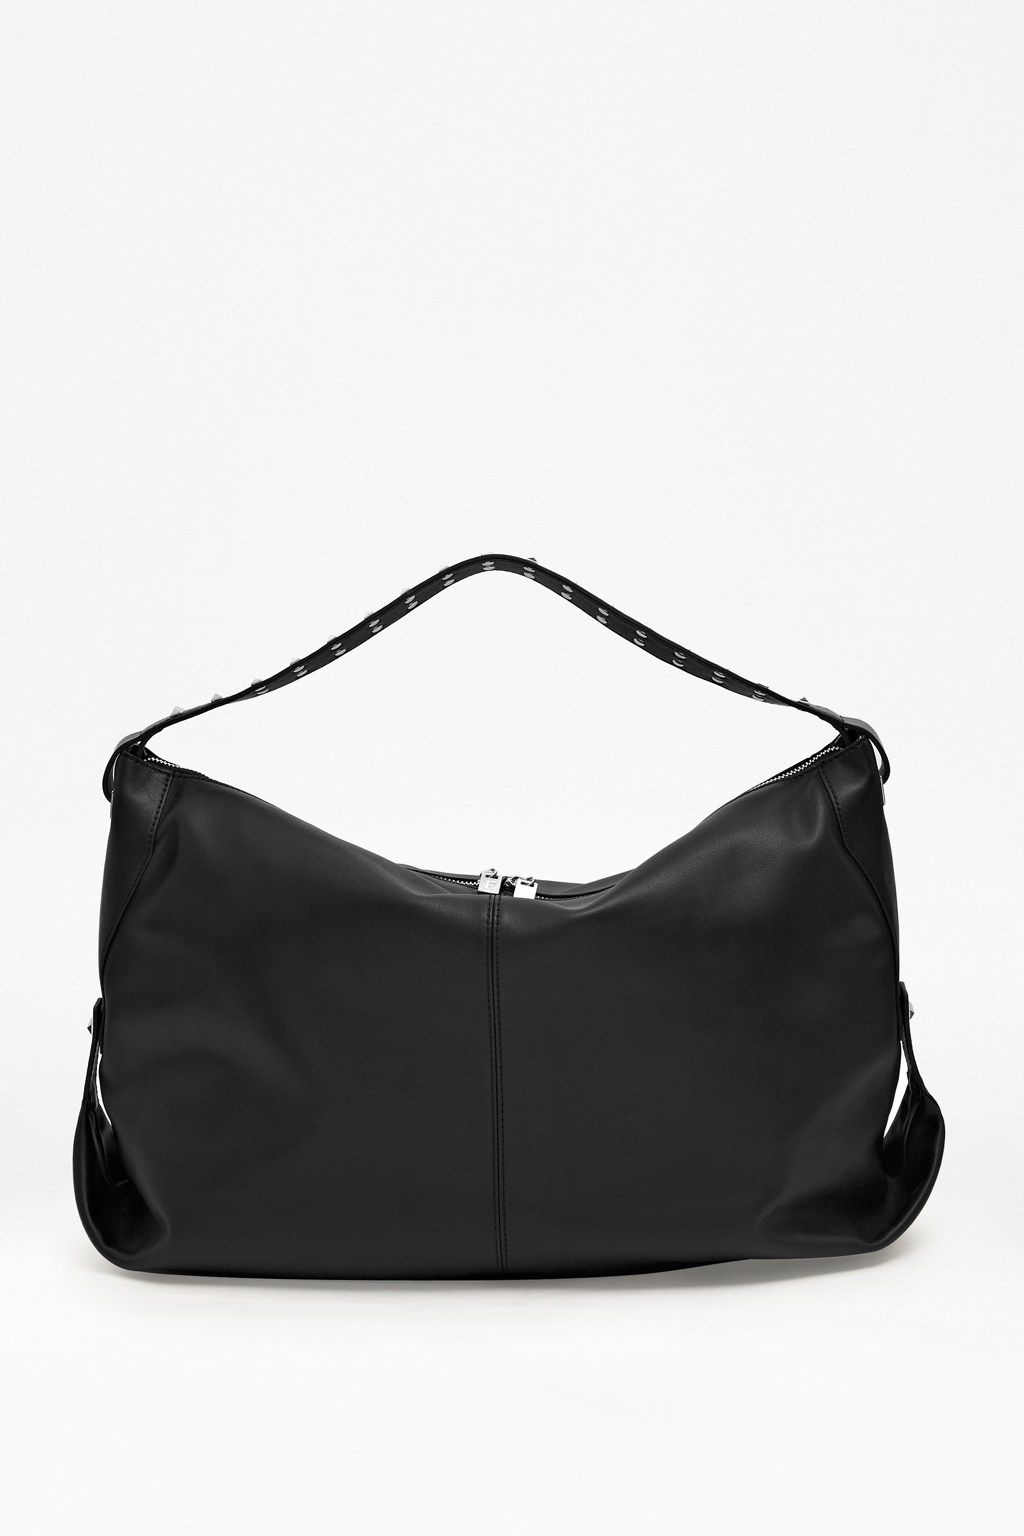 French Connection Spot On Chain Shoulder Bag 101